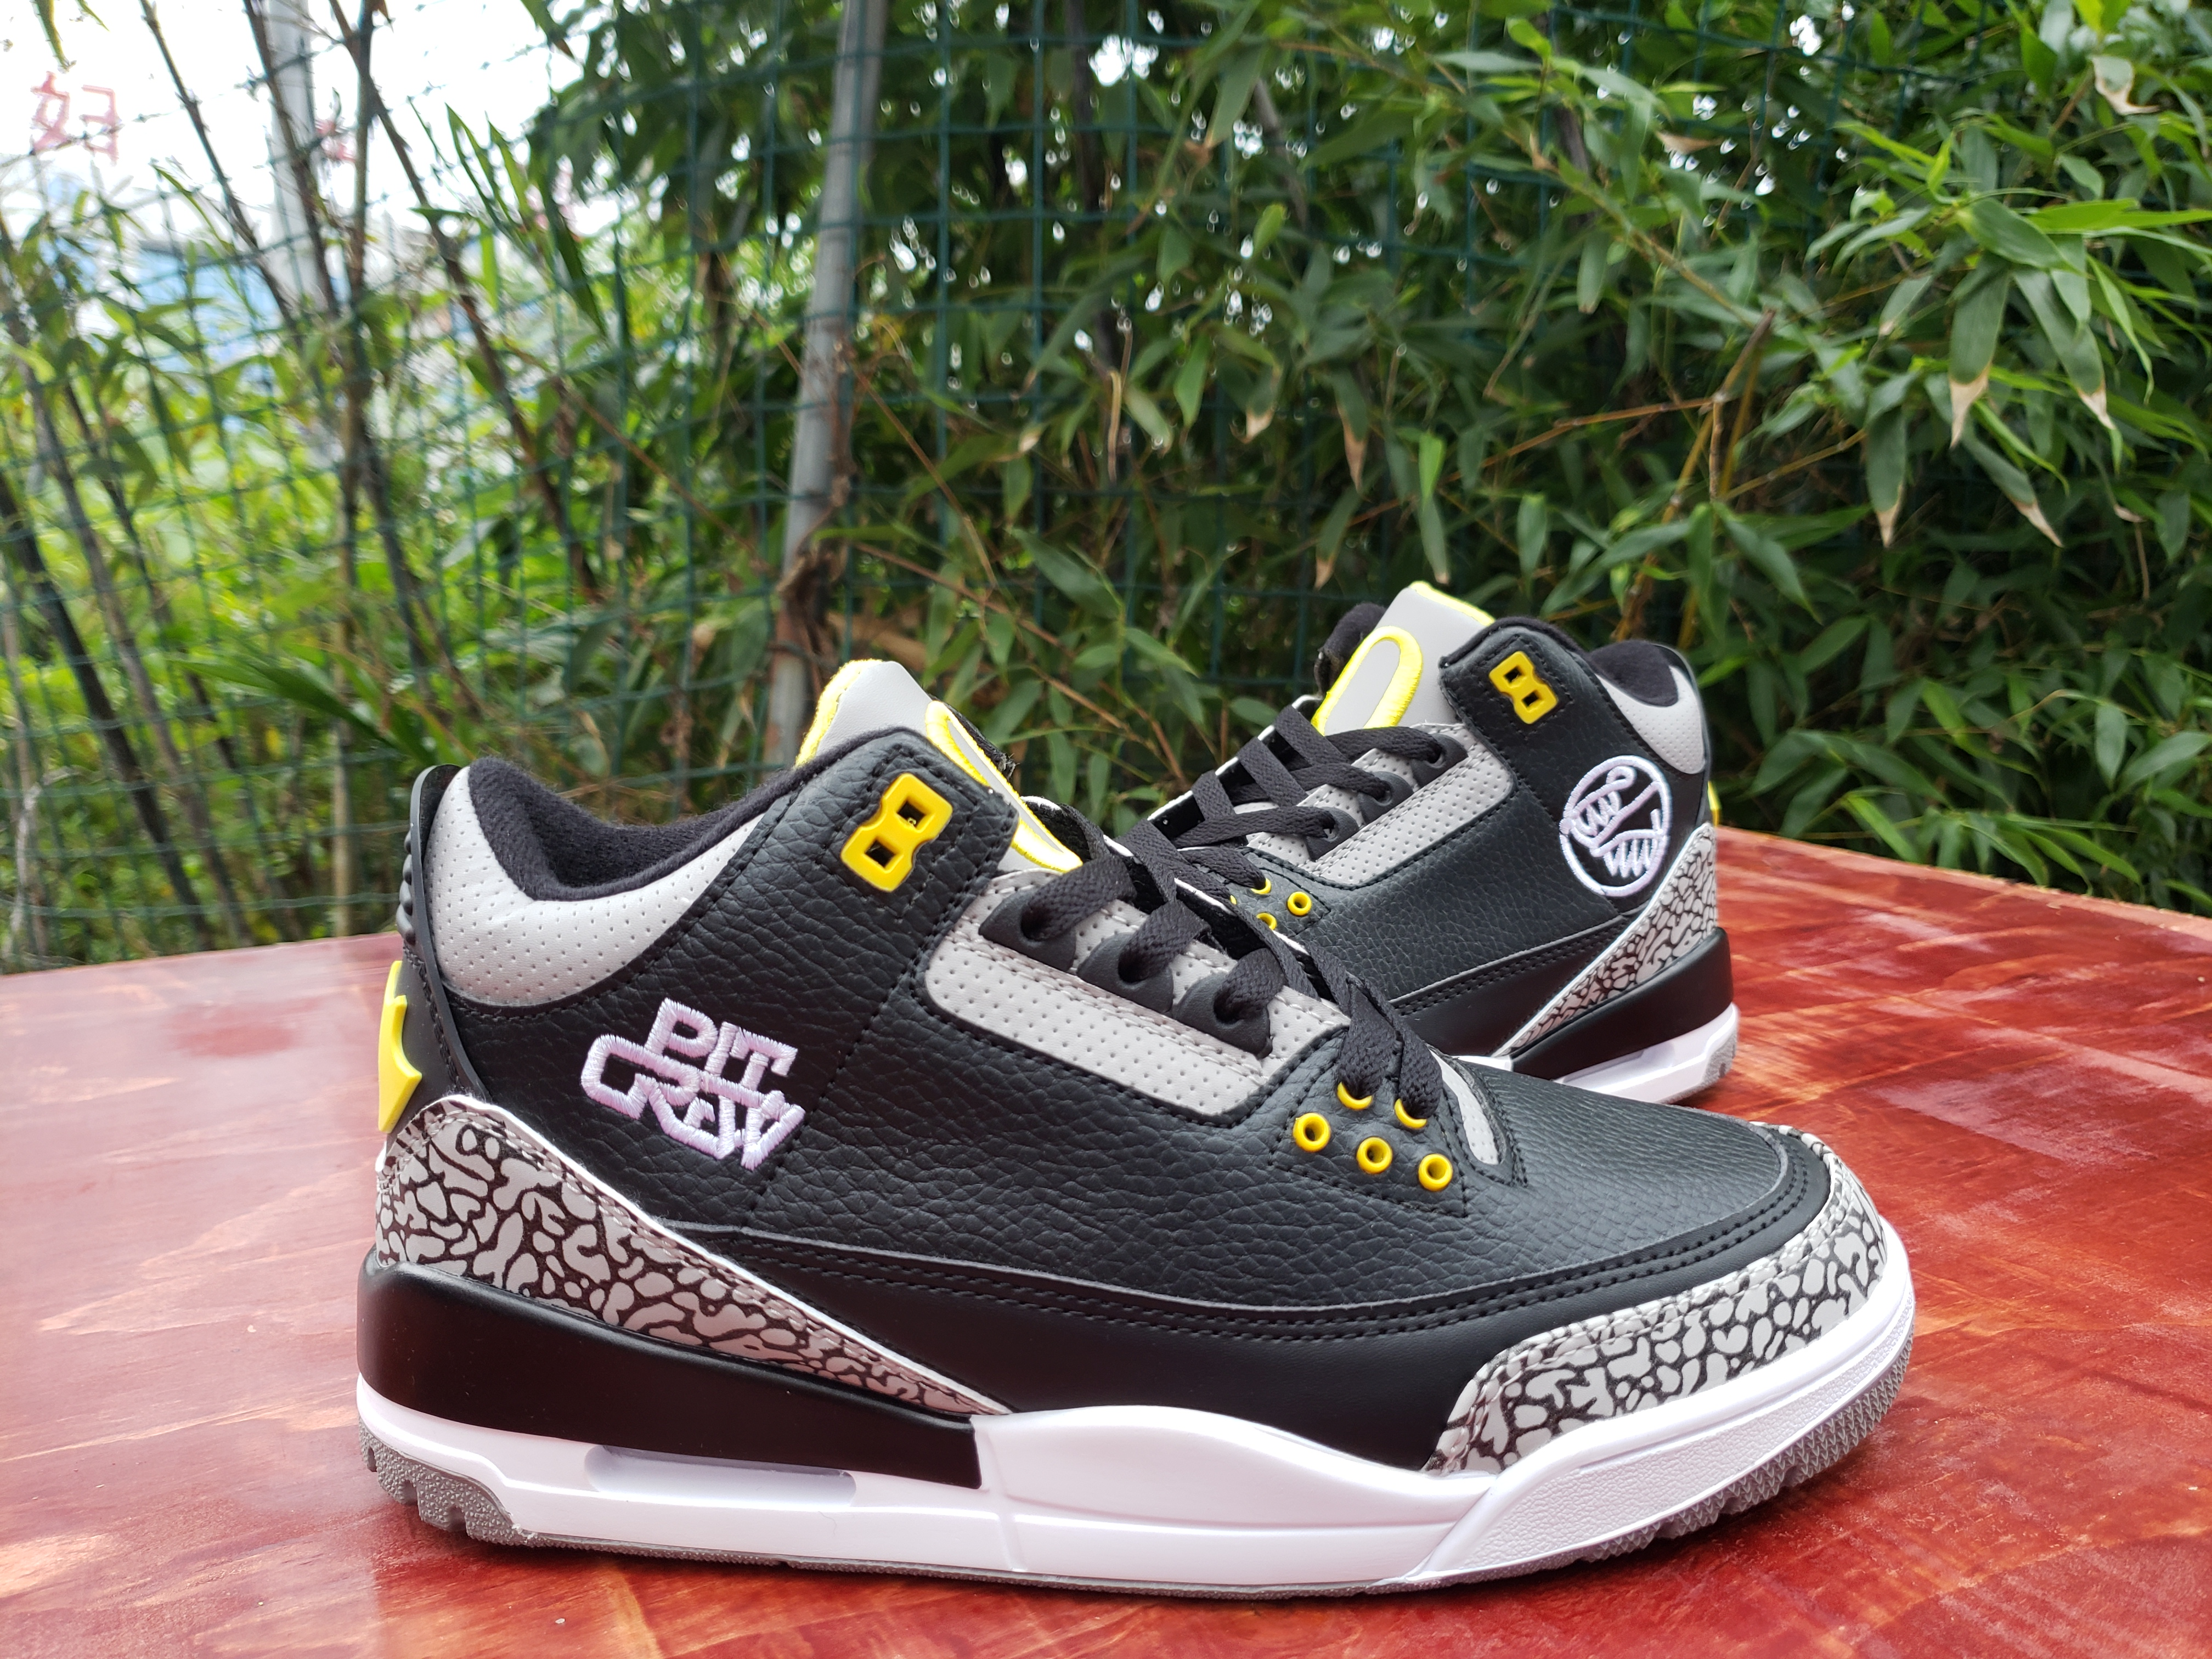 2020 Air Jordan 3 Retro Black Cement Grey Yellow Shoes